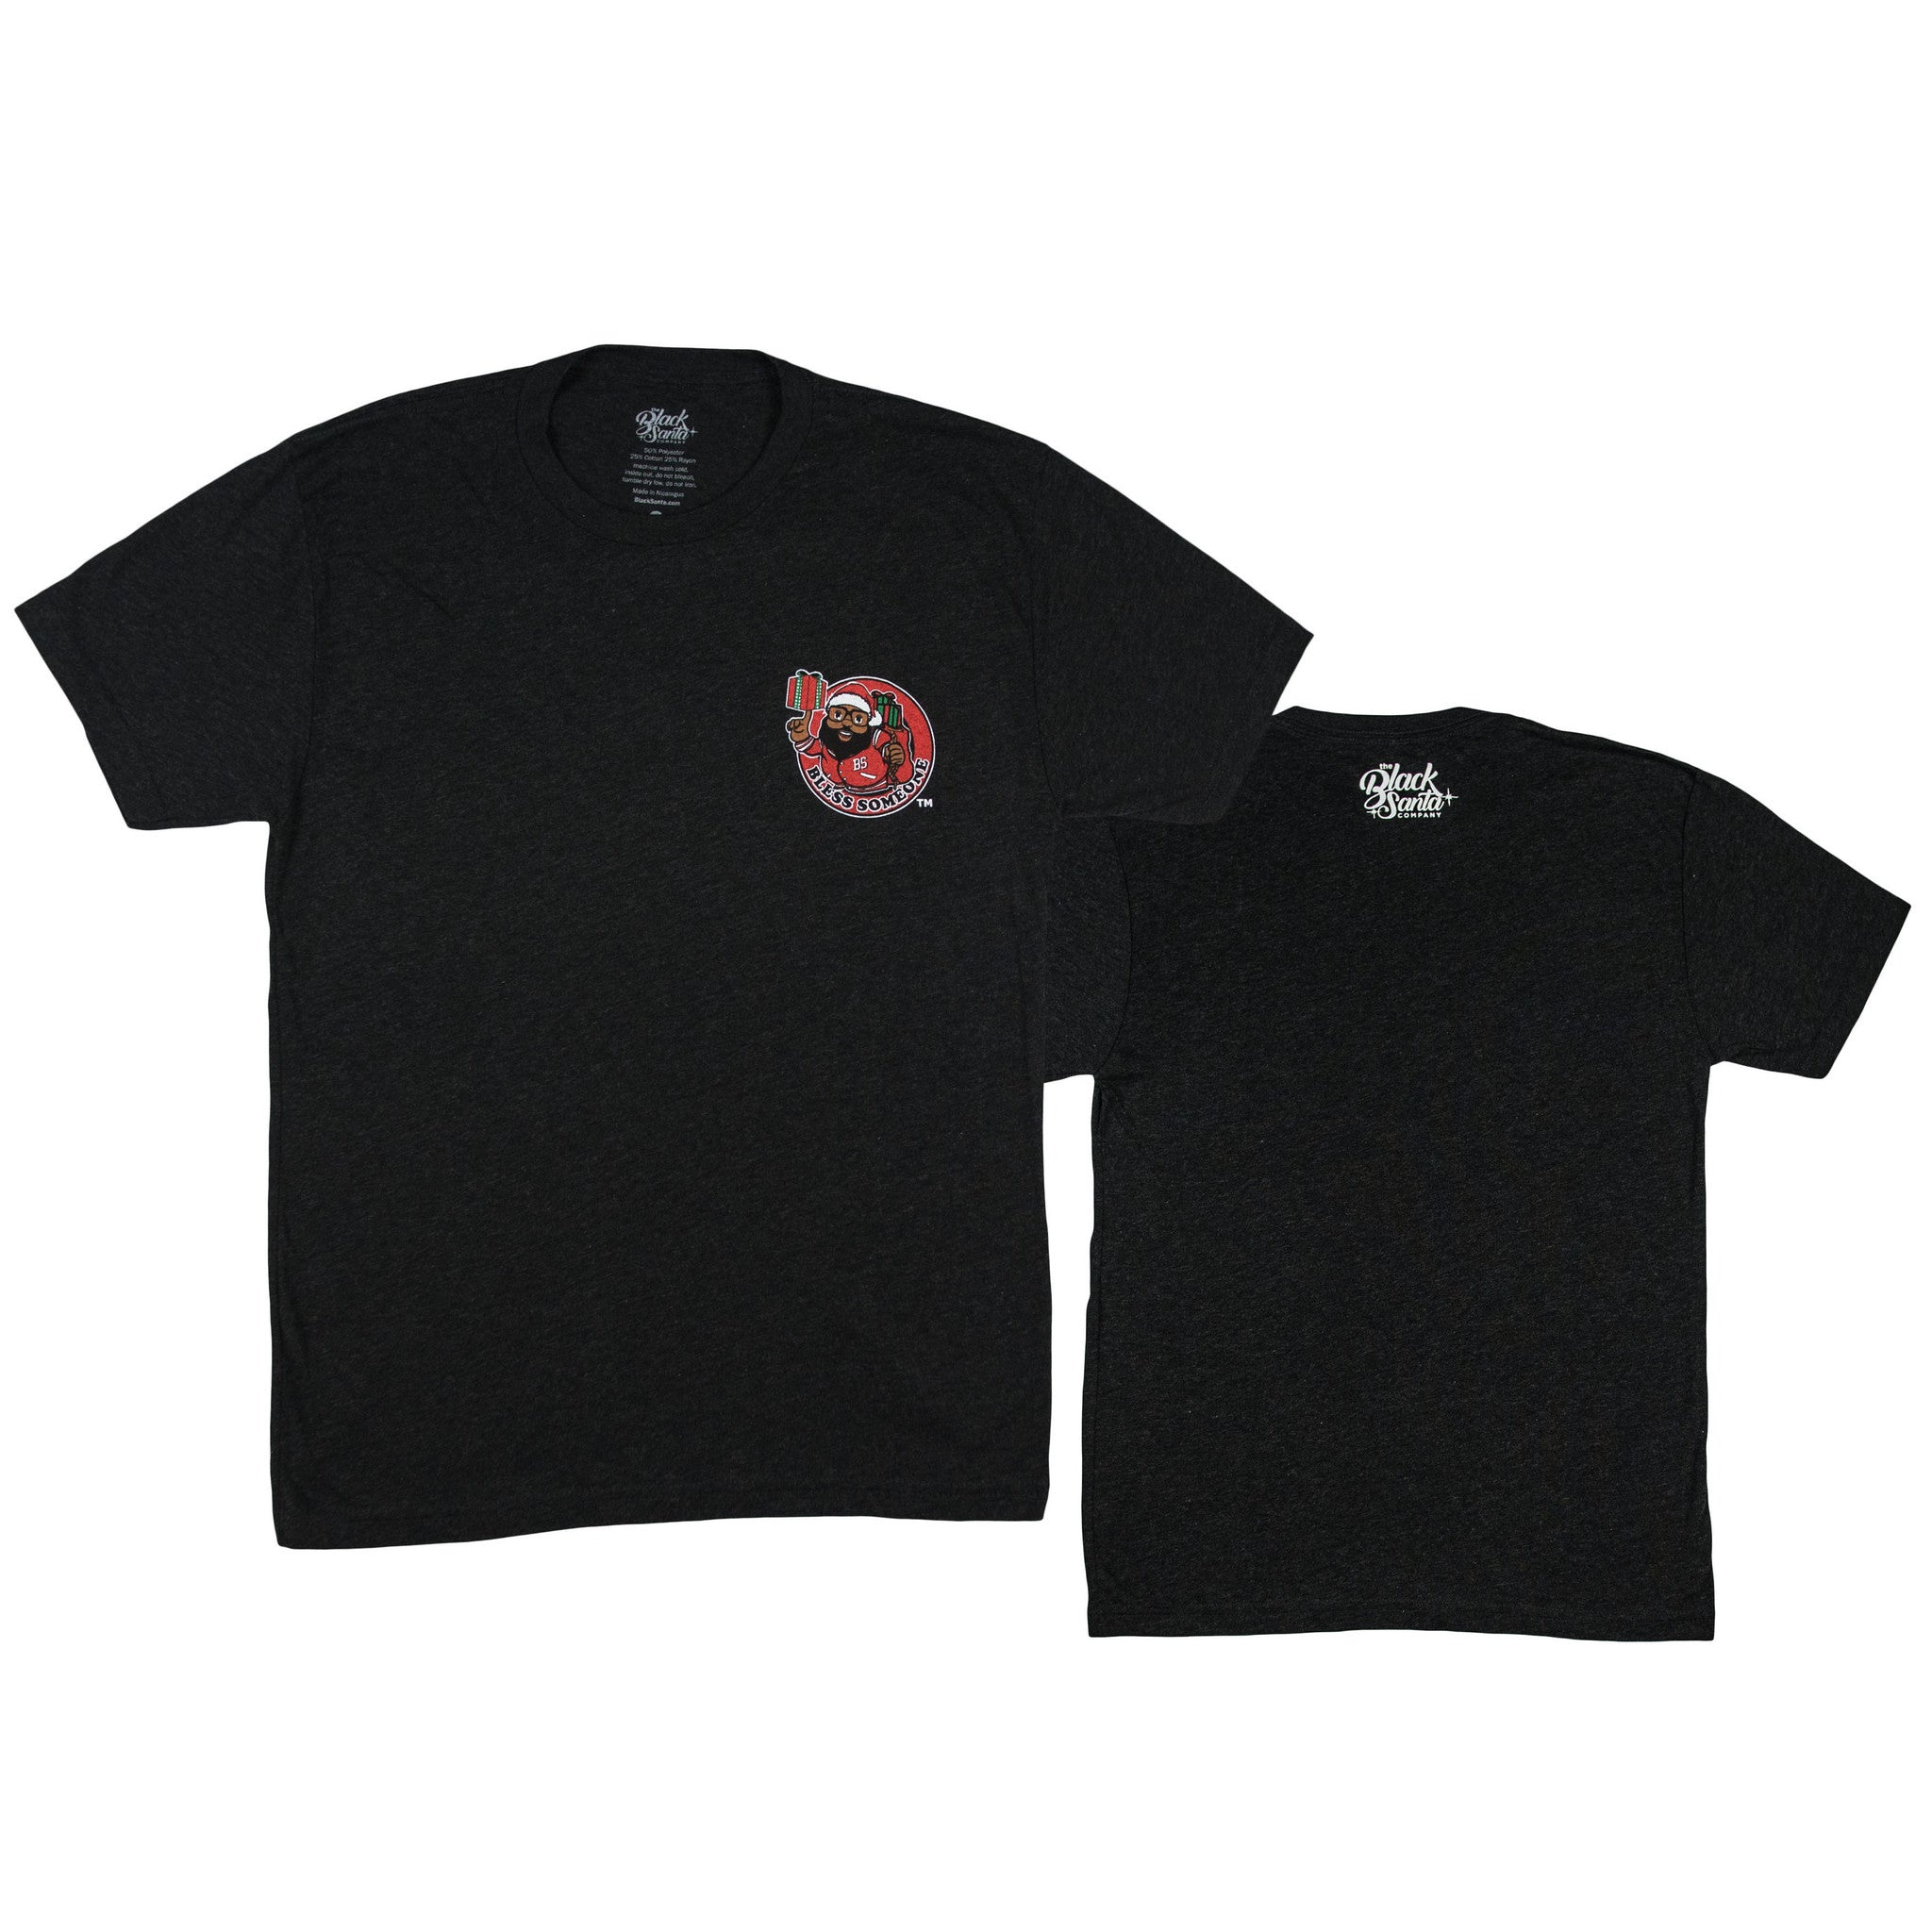 Black Santa Bless Circle Tee - Vintage Black - The Black Santa Company